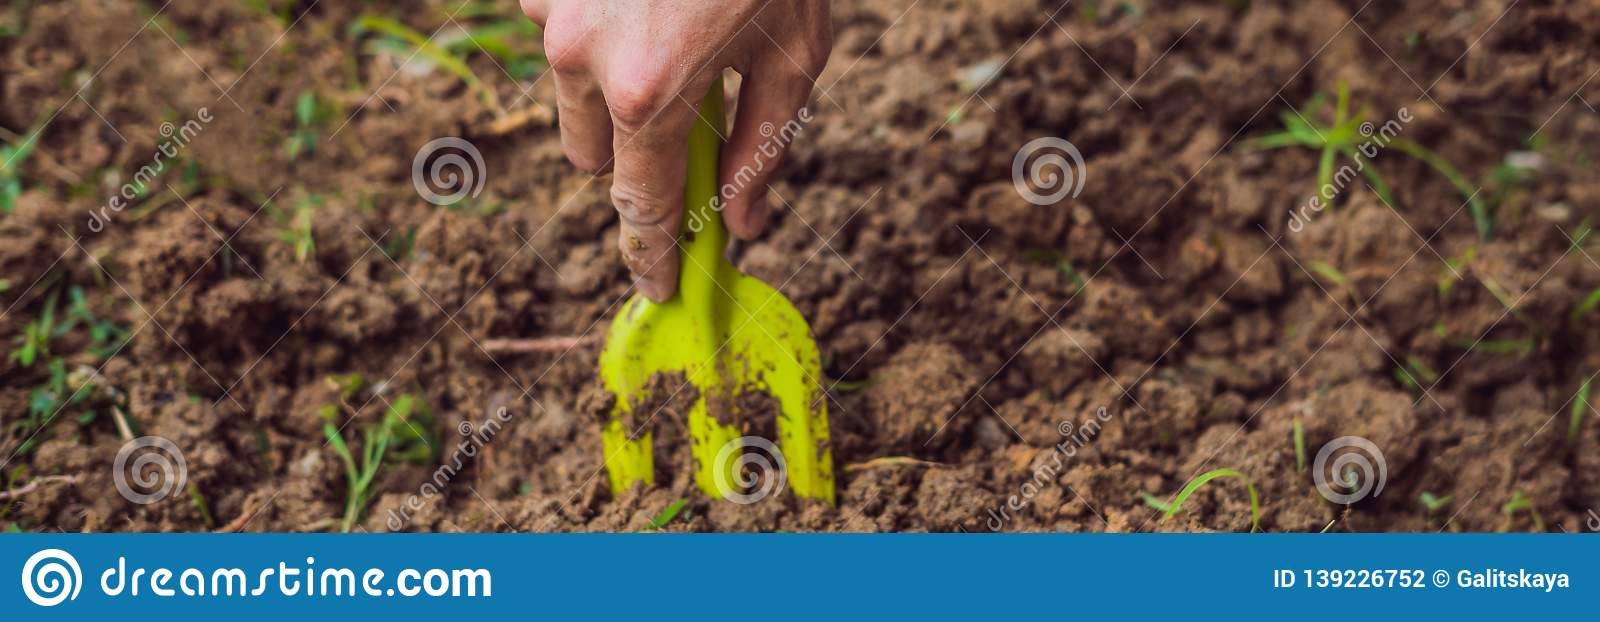 A Man S Hand With A Garden Tool Man Gardening Banner Long Format Stock Photo Image Of Environment Leaf 139226752